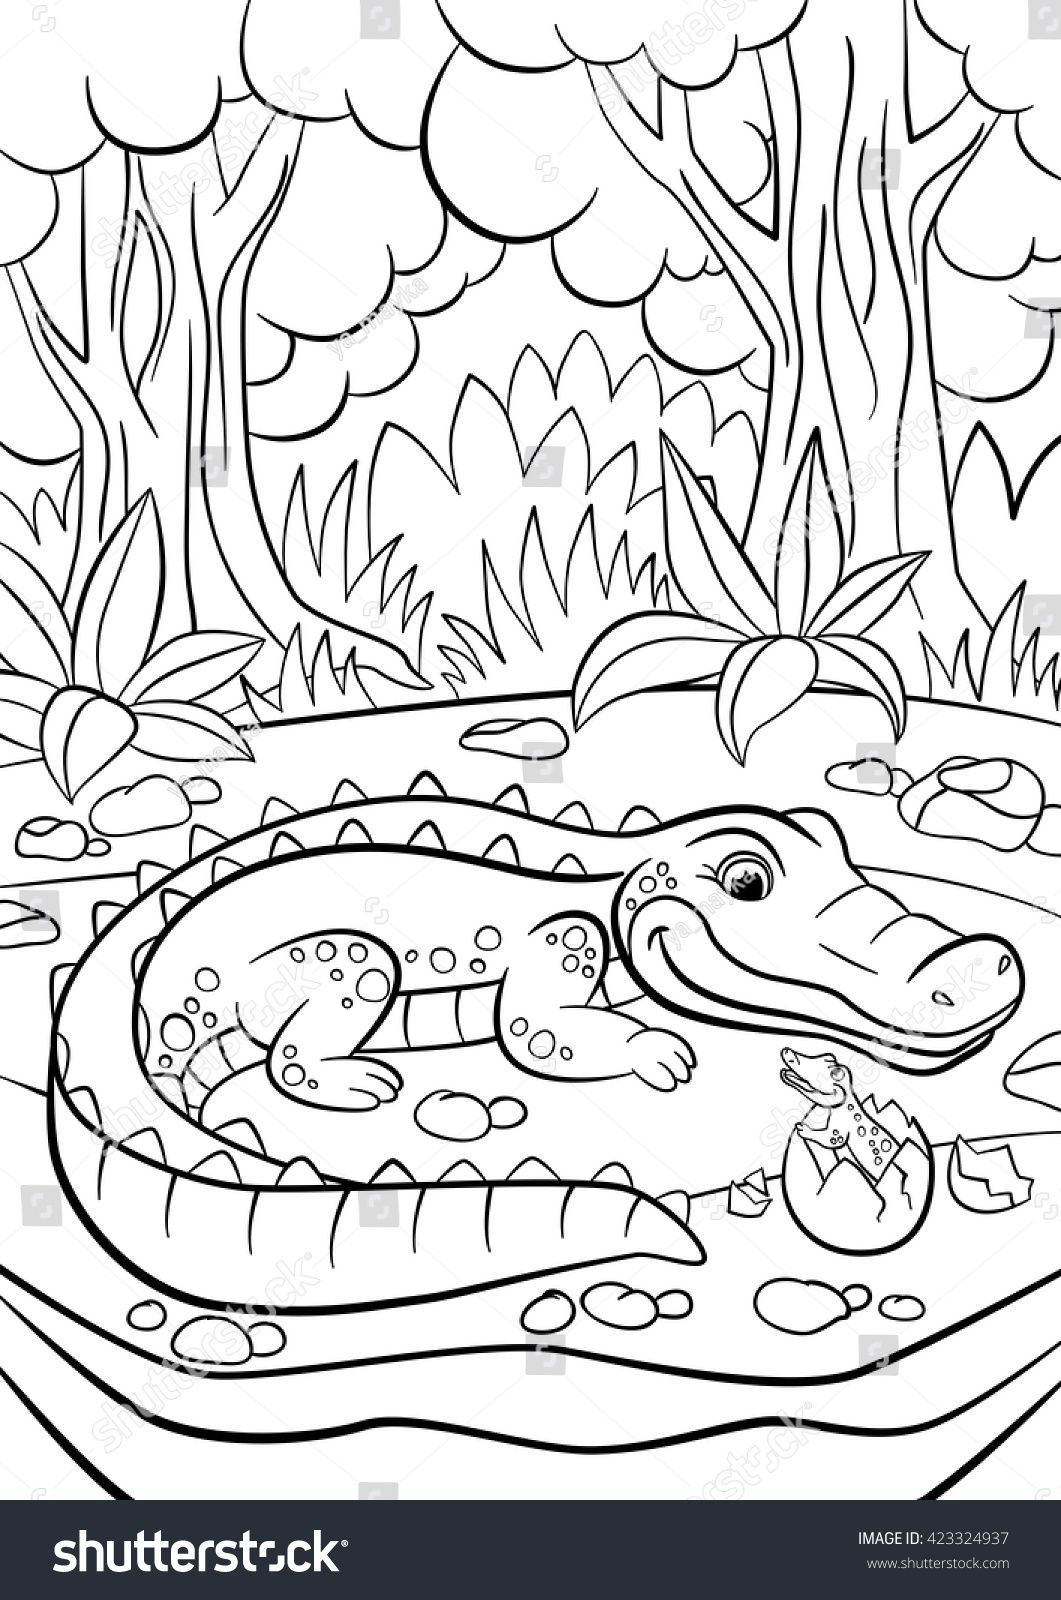 Coloring Pages Animals Mother Alligator Looks At Her Little Cute